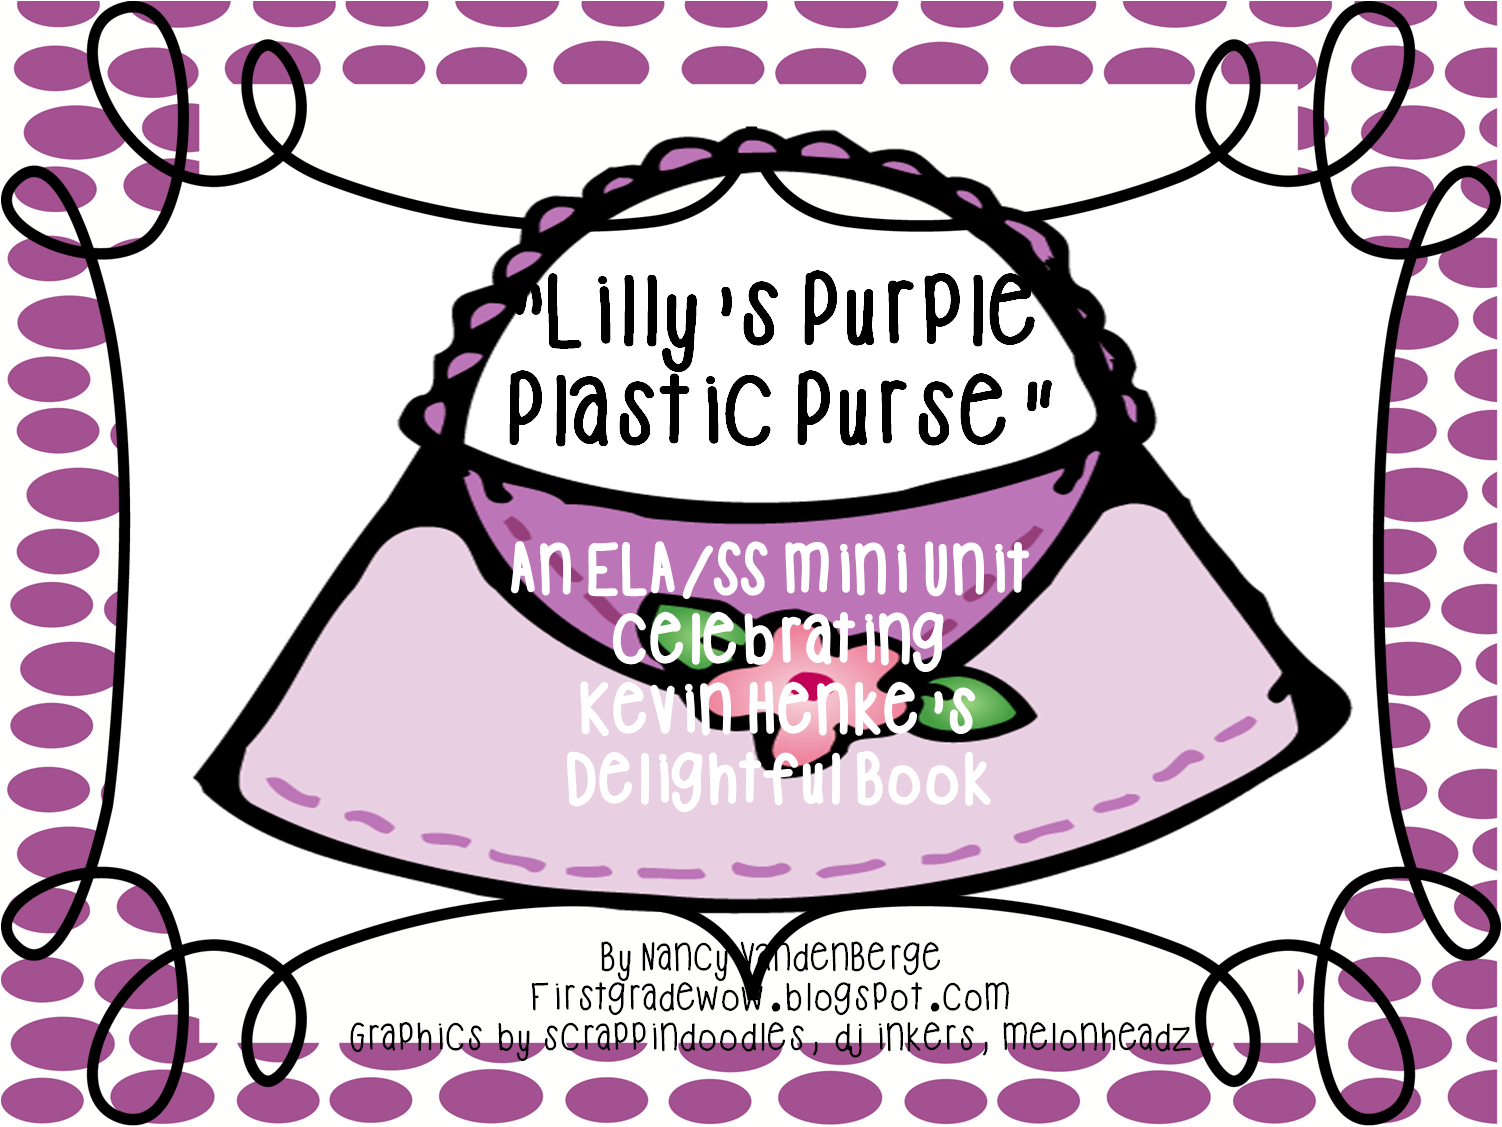 First Grade Wow Lilly S Purple Plastic Purse Mini Unit